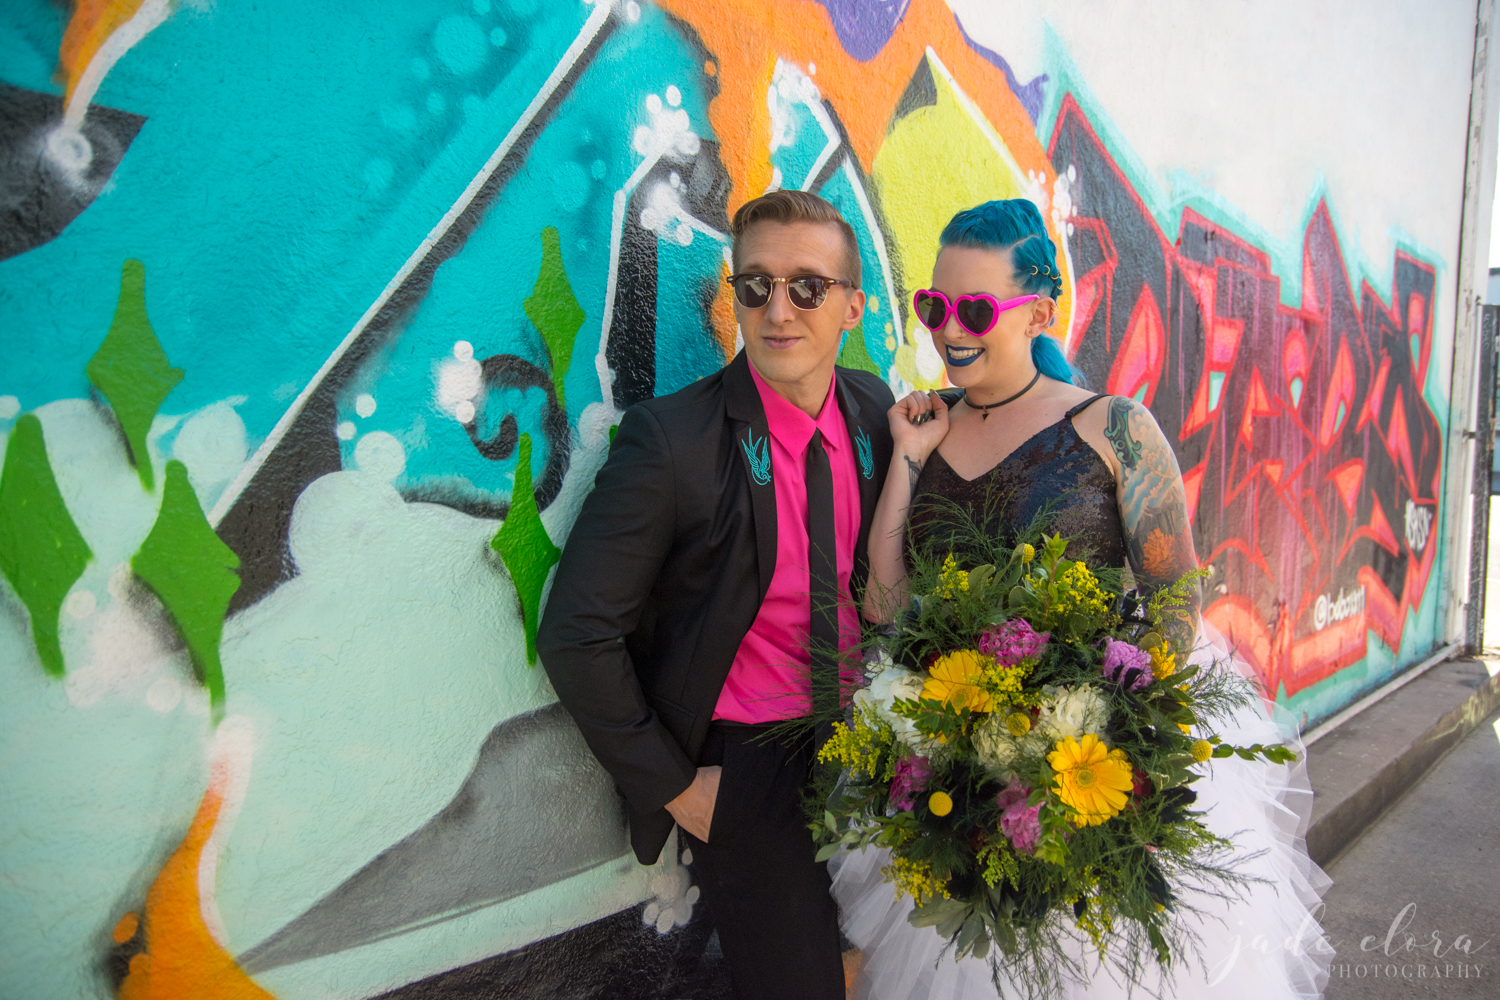 Colorful-Punk-Wedding-LA-36.jpg